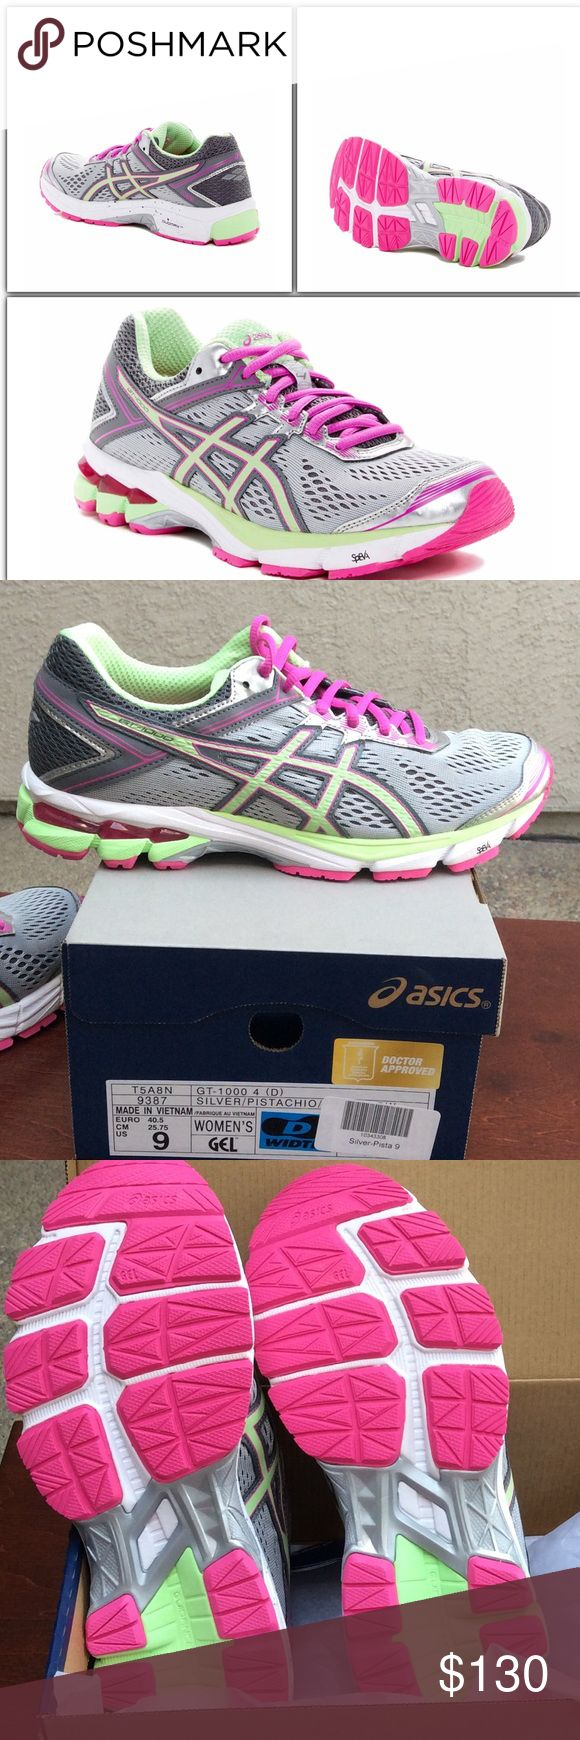 Asics Retail for $410!!   Sz: 9W  Athletic Shoe Retail Price $410   Wide Width   Asics Style # GT-1000-4  These shoes run true to size   Color: Pink, Silver and Pistachio Features: Round toe with bumper - Lace-up vamp  -  padded tongue and collar  -  removable padded insole  - synthetic fiber and synthetic leather upper, rubber sole 🎀 Asics Shoes Athletic Shoes